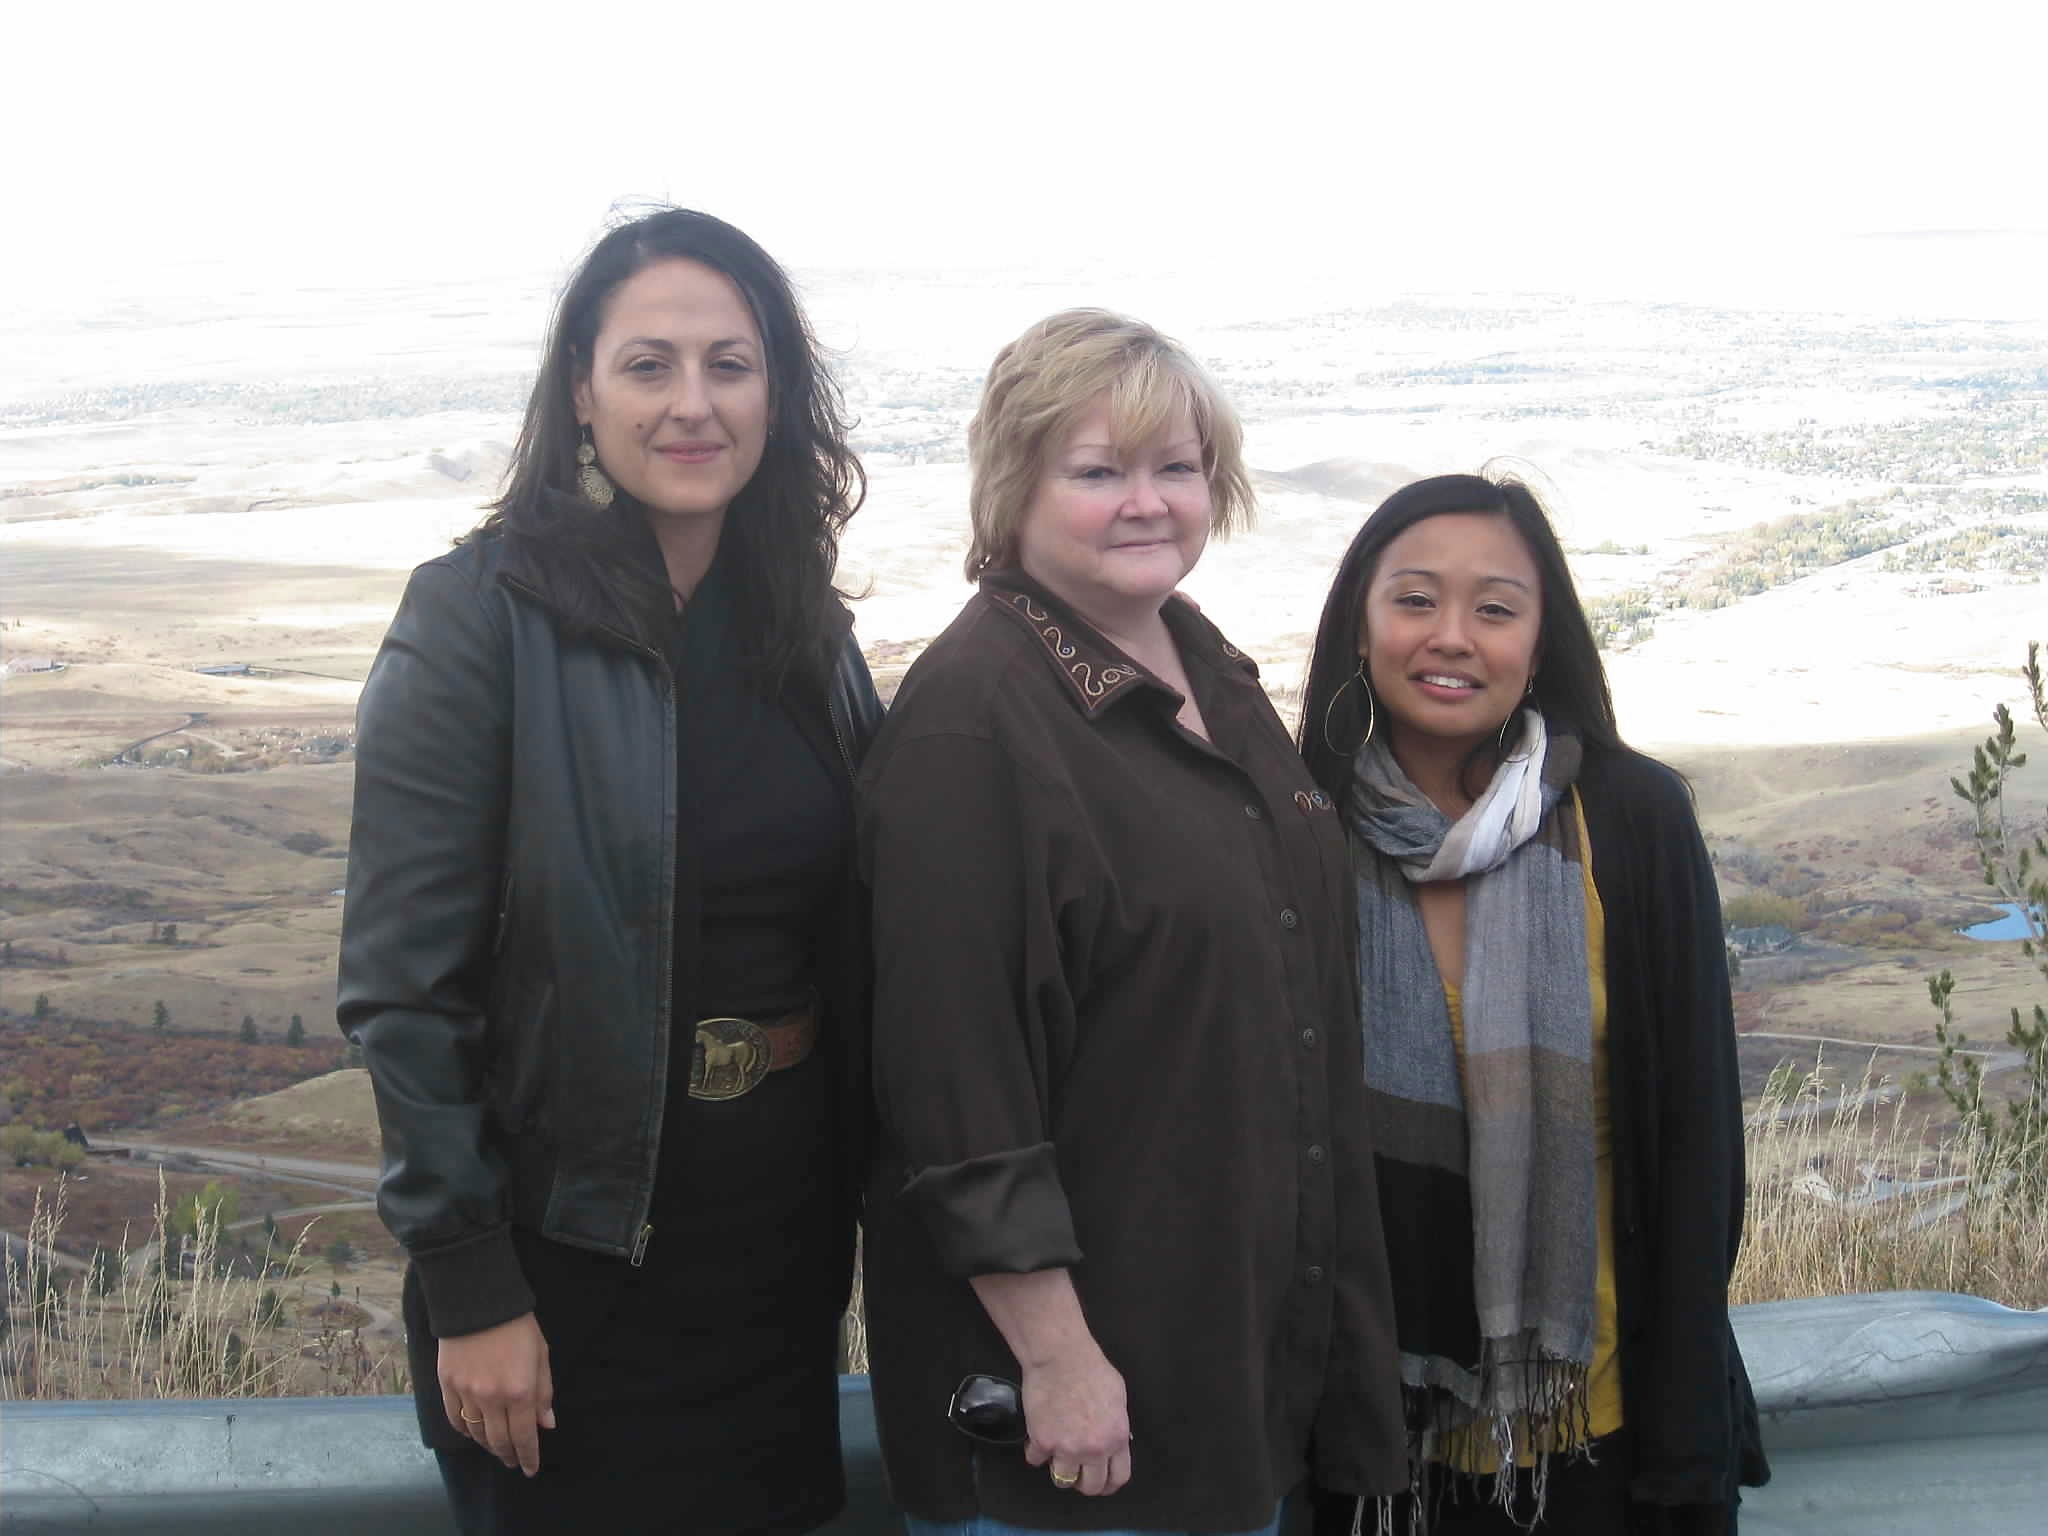 """Matt Shepard is a Friend of Mine"" co-producer Zeina Barkawi (left), Matthew Shepard's mother Judy, and Michele filming in Matt's hometown of Casper, Wyoming."